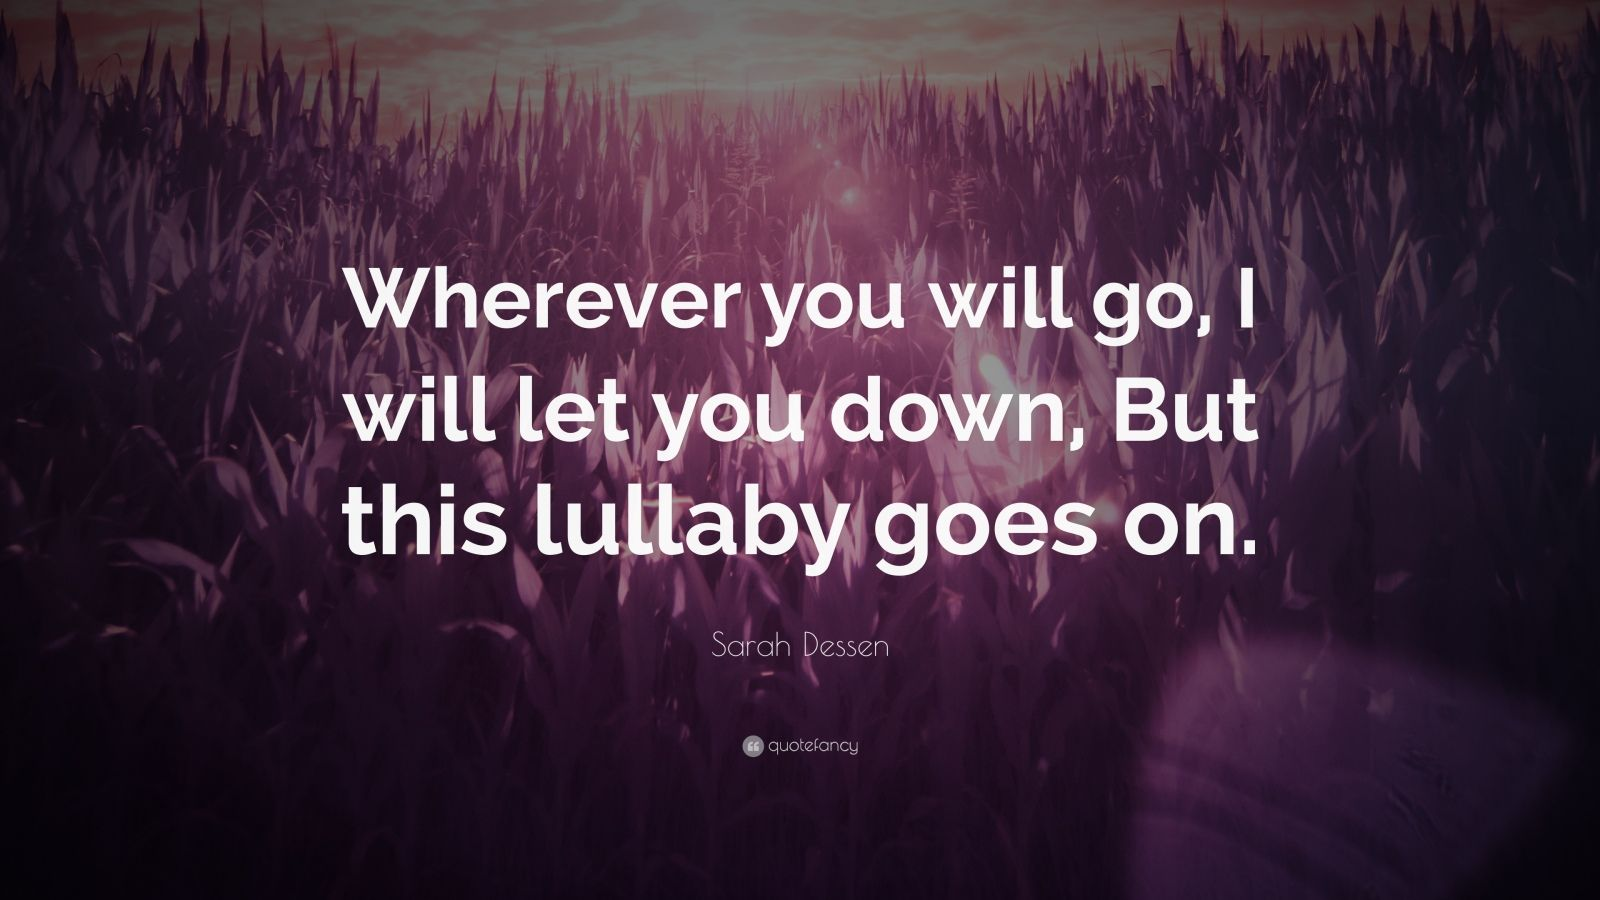 """Sarah Dessen Quote: """"Wherever you will go, I will let you down, But this lullaby goes on."""""""